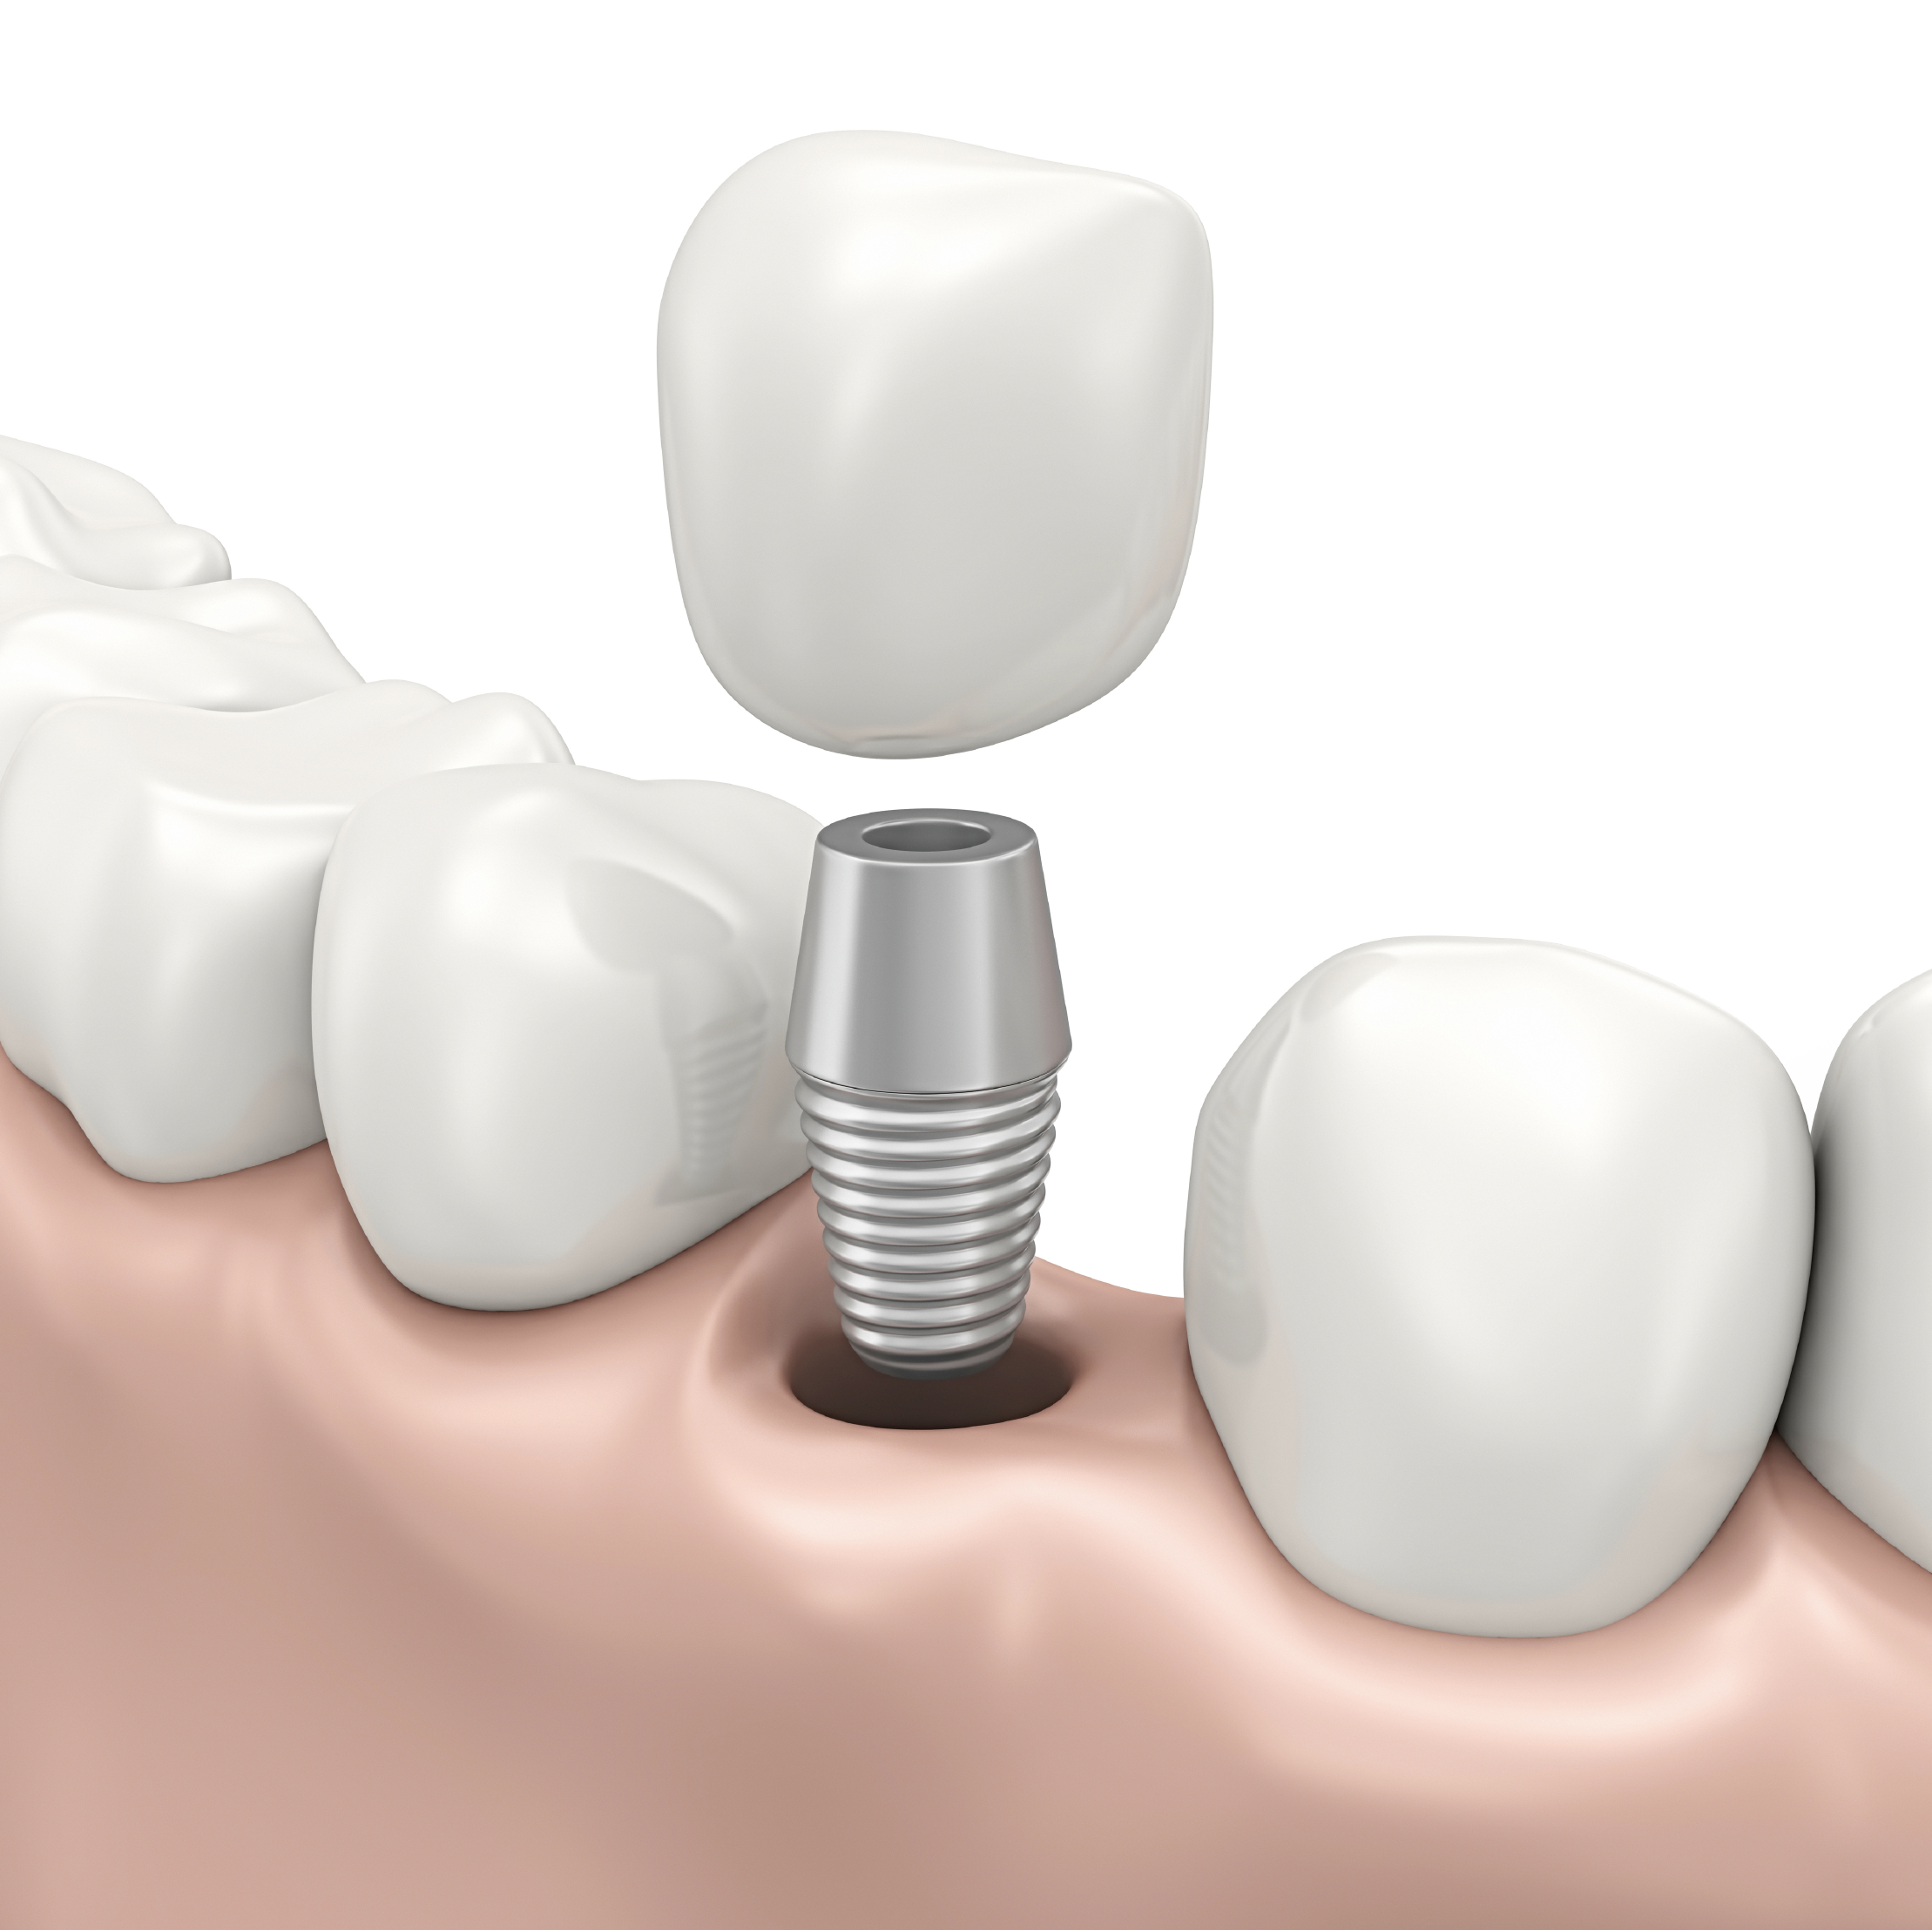 Simi Valley Dental Implant Options - Full & Mini